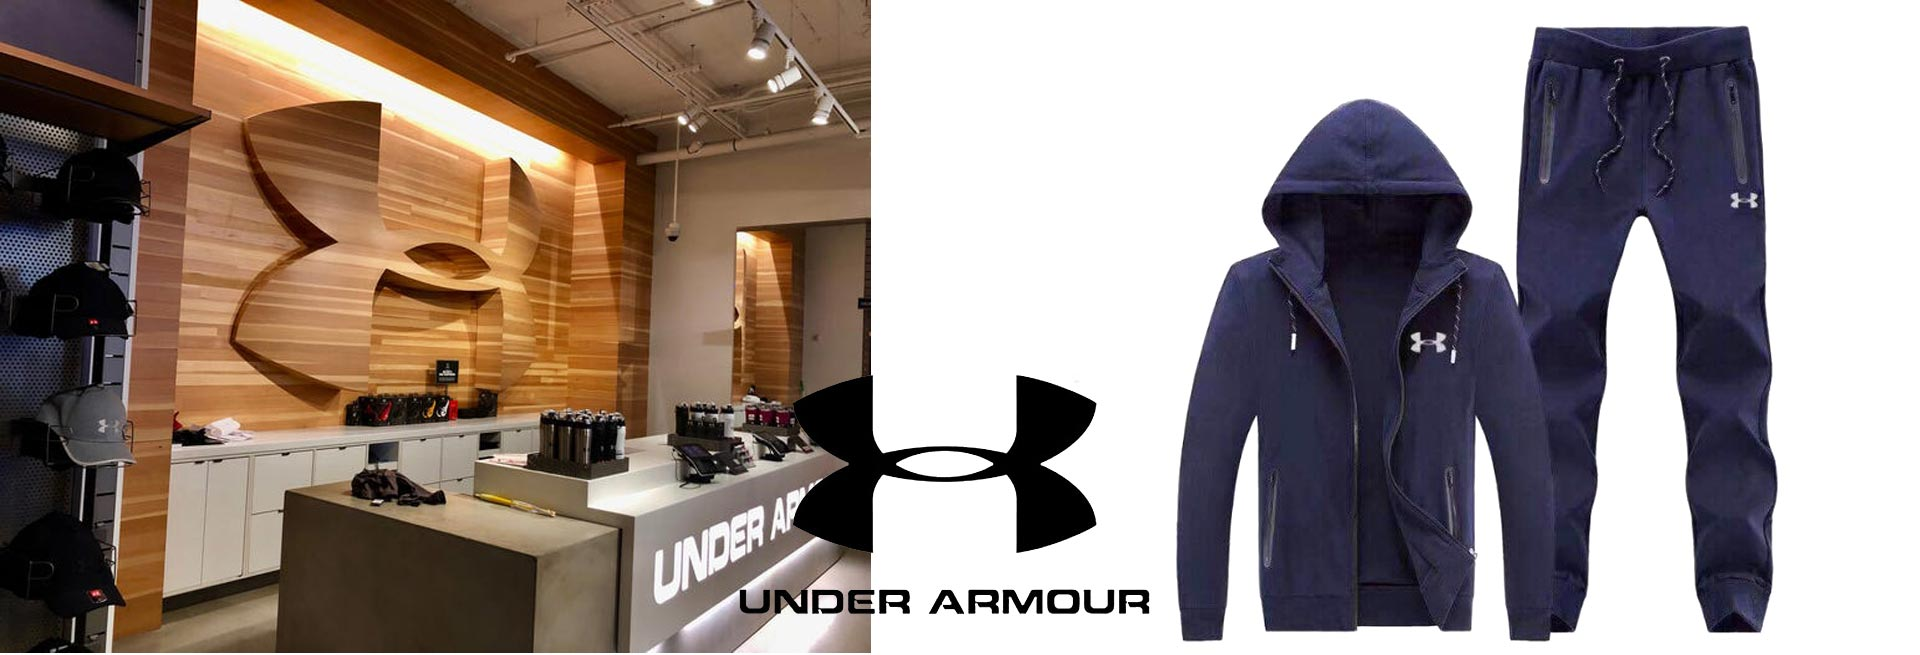 under armour d8 - آندر آرمور Under Armor